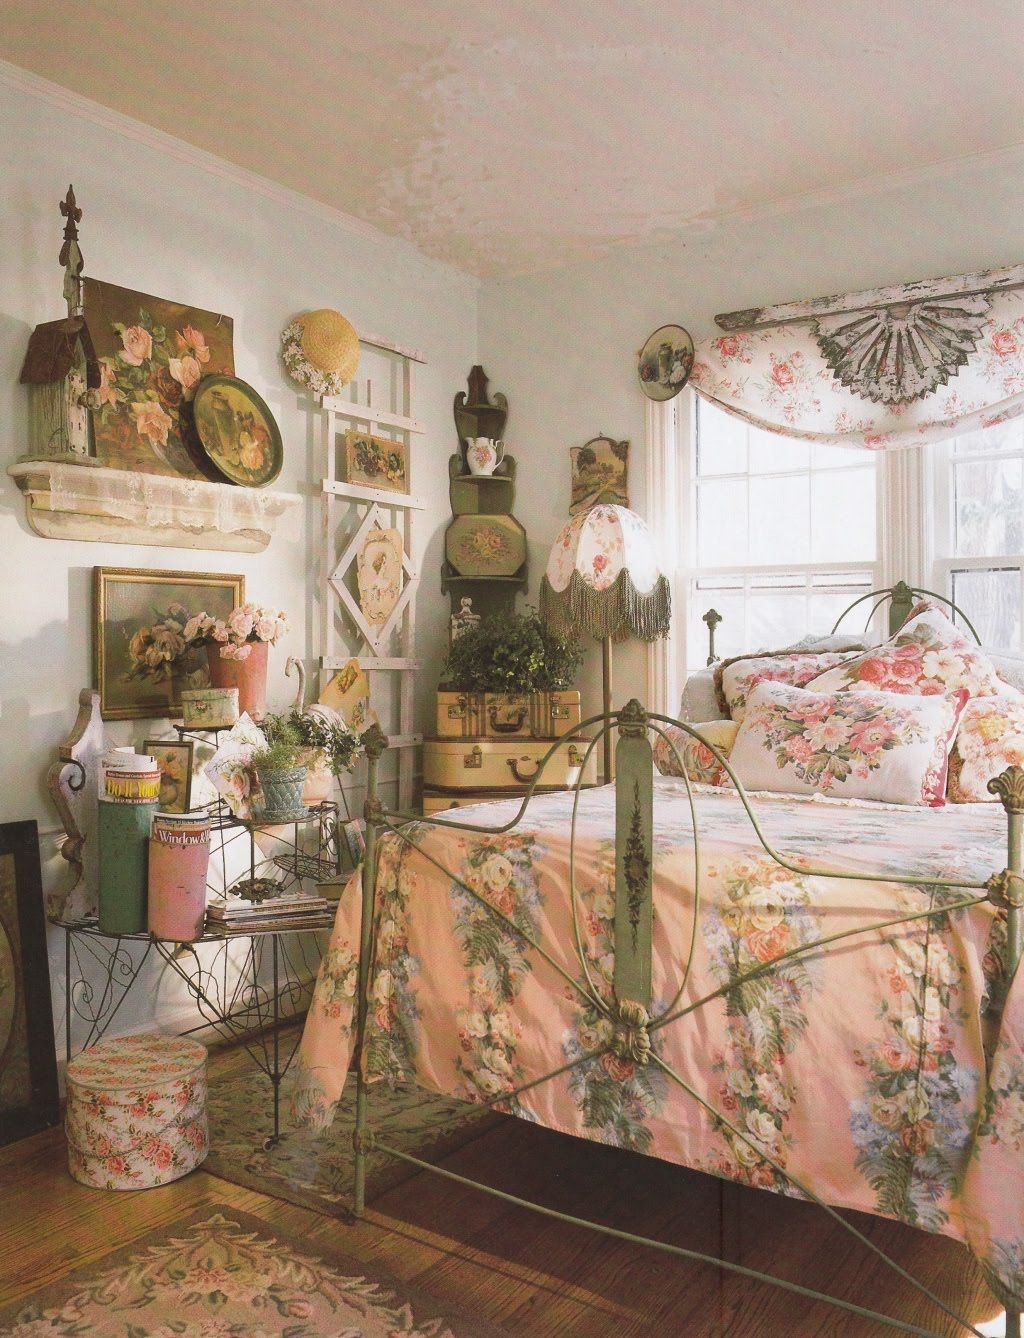 modern interior design with vintage furniture and decor accessories in vintage style - Vintage Bedroom Decor Ideas